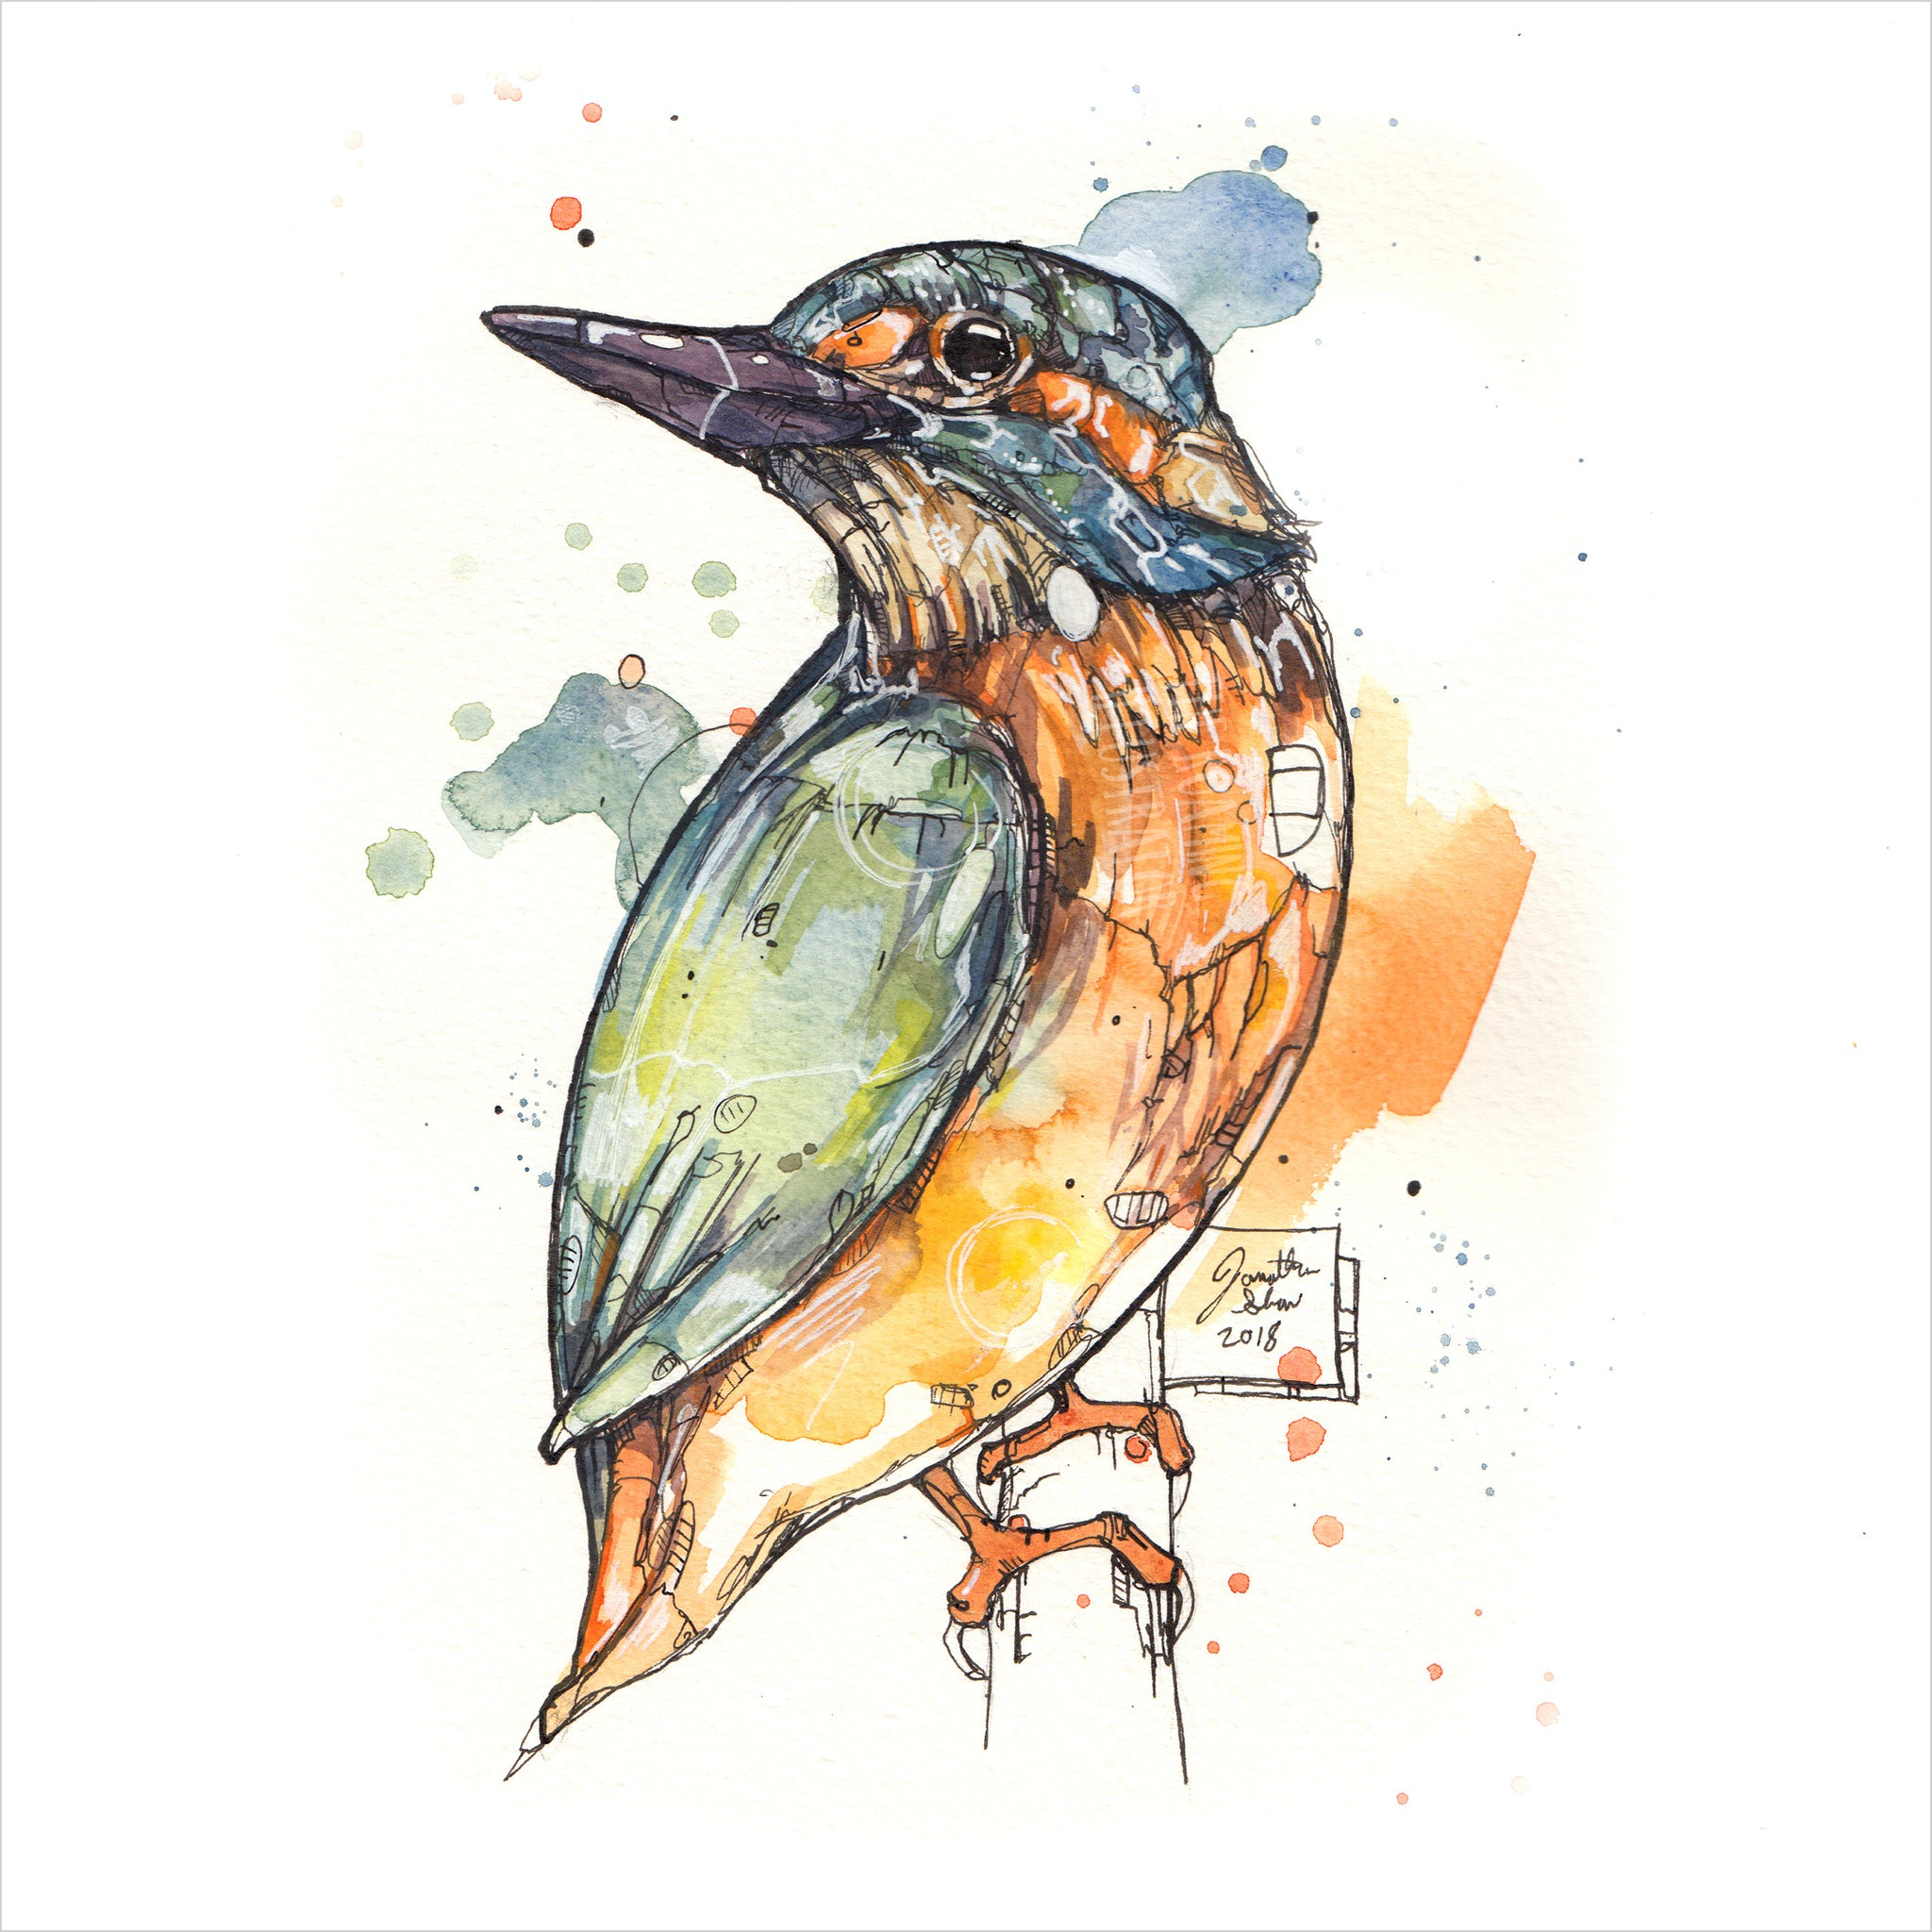 """Kingfisher"" - 8x10 Reproduction print"